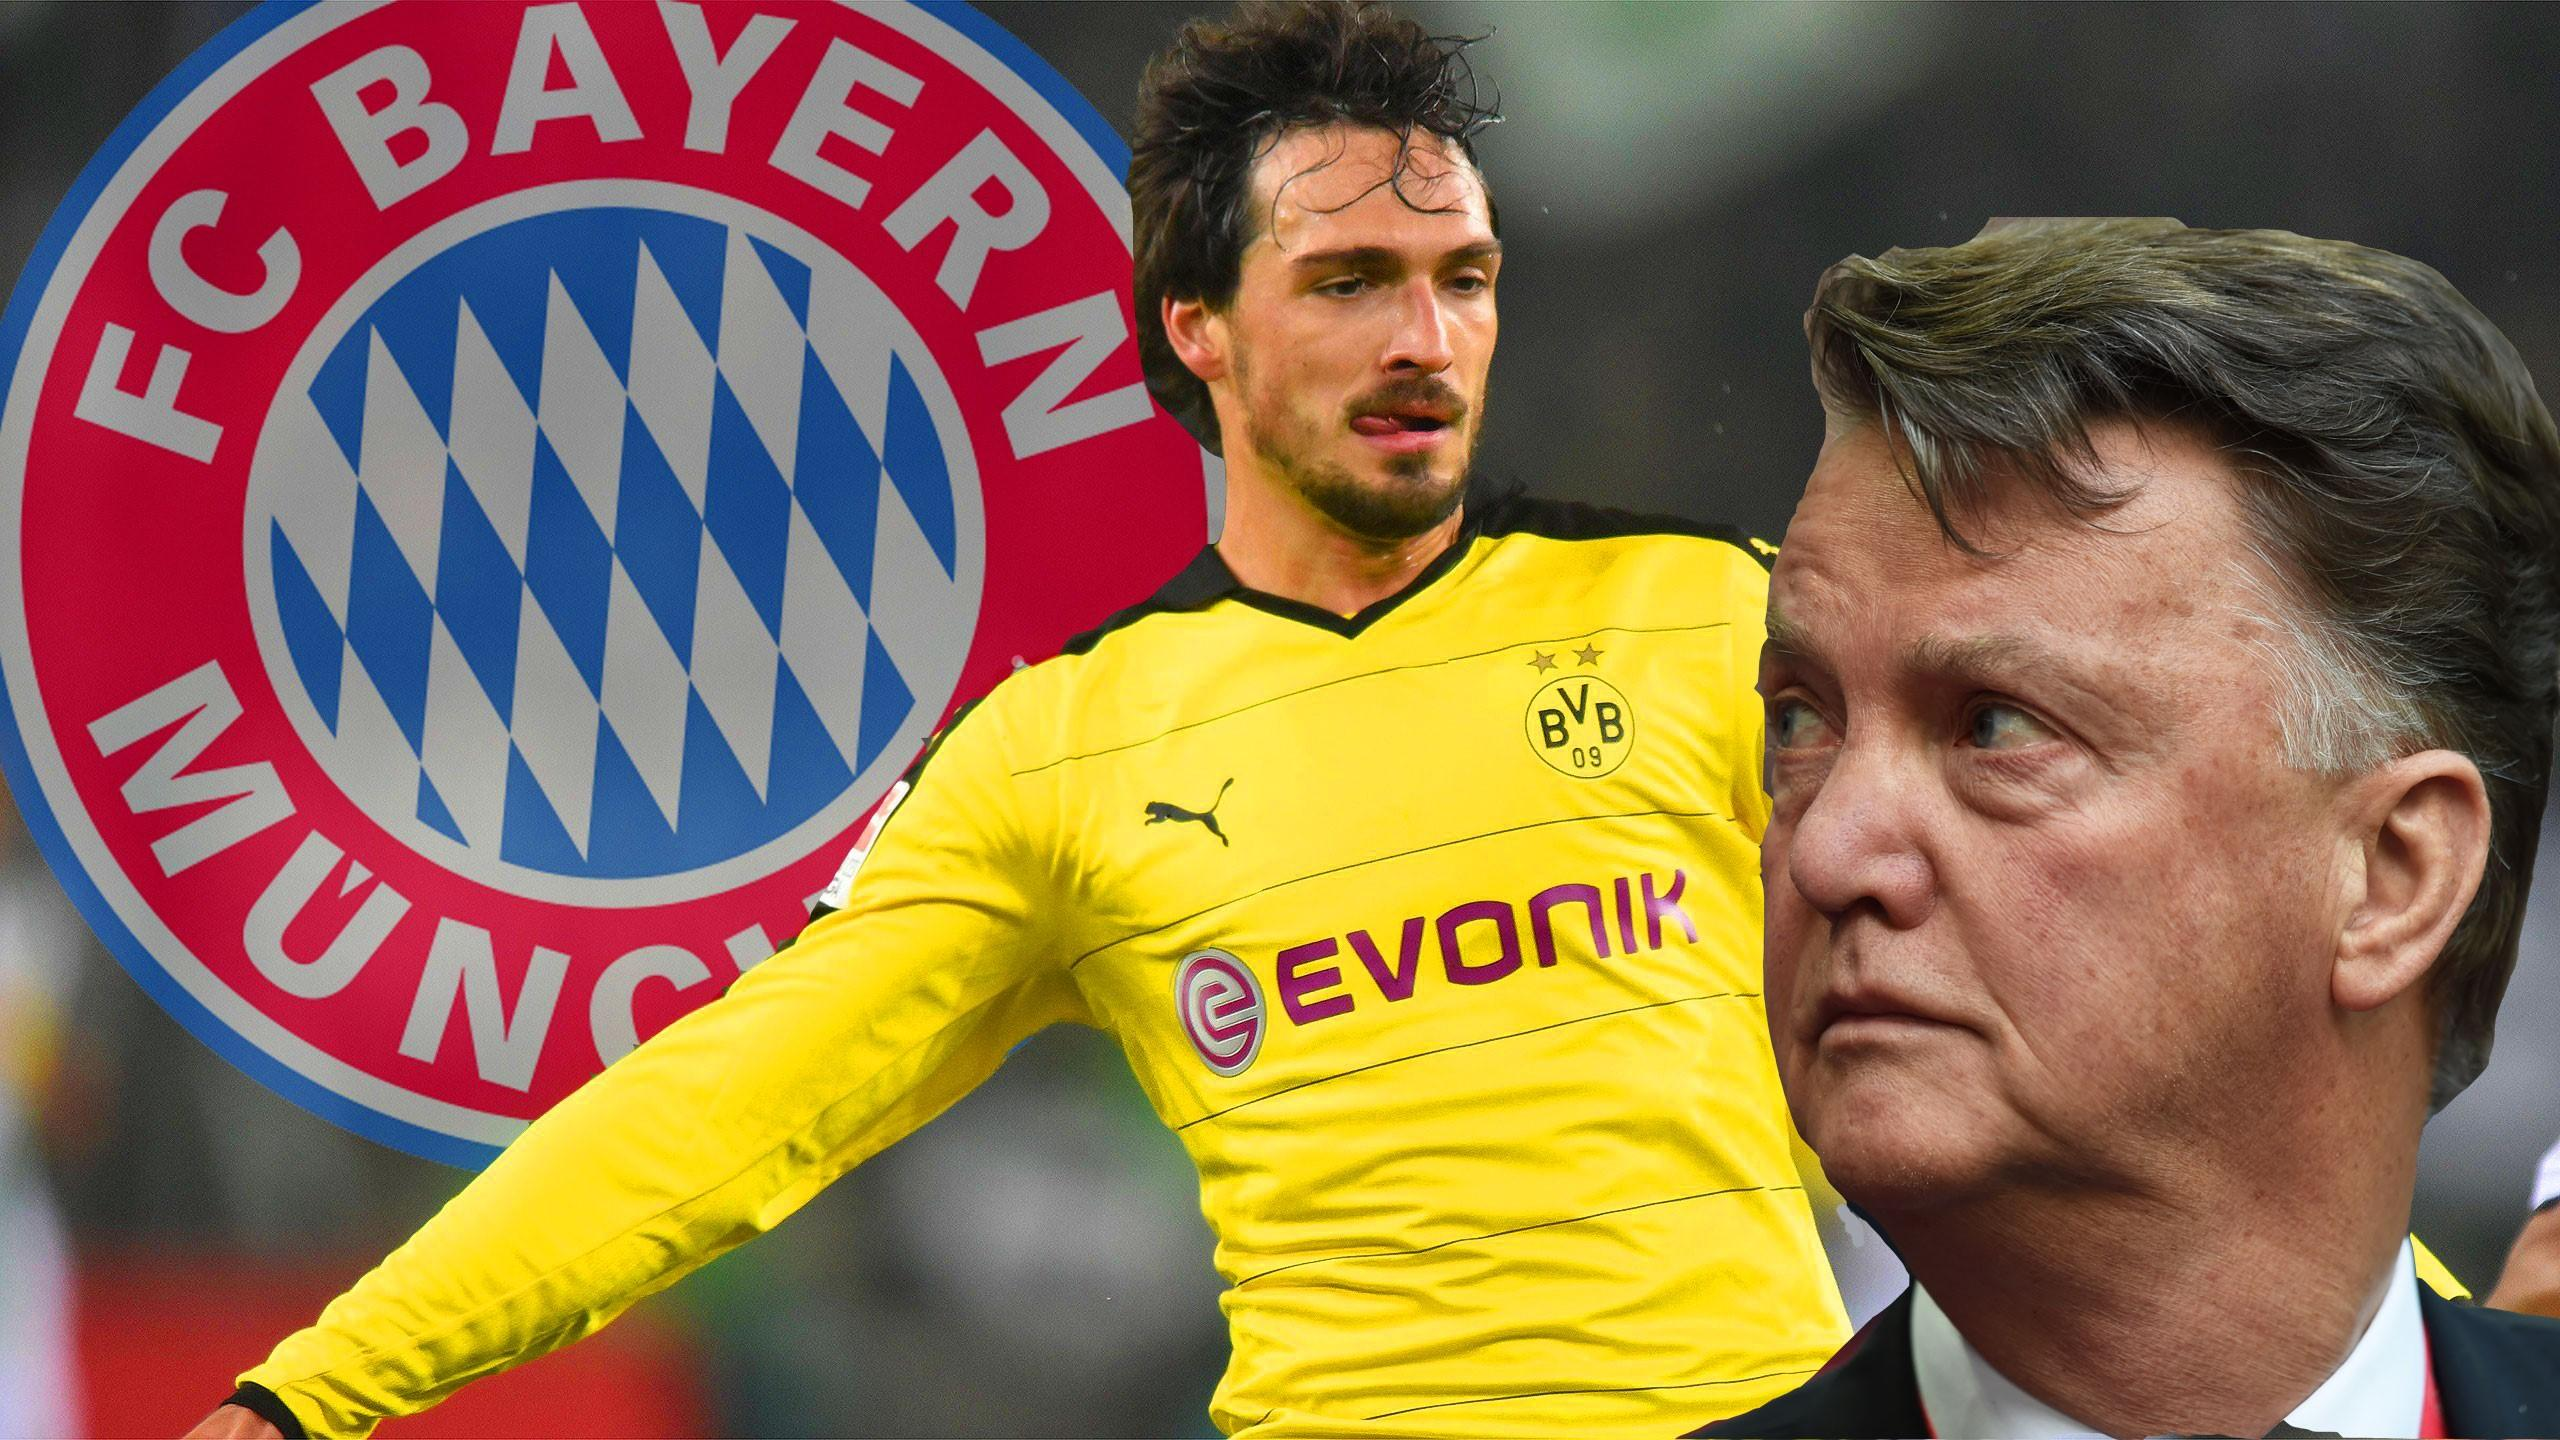 Mats Hummels joins Bayern Munich and Louis van Gaal looks annoyed